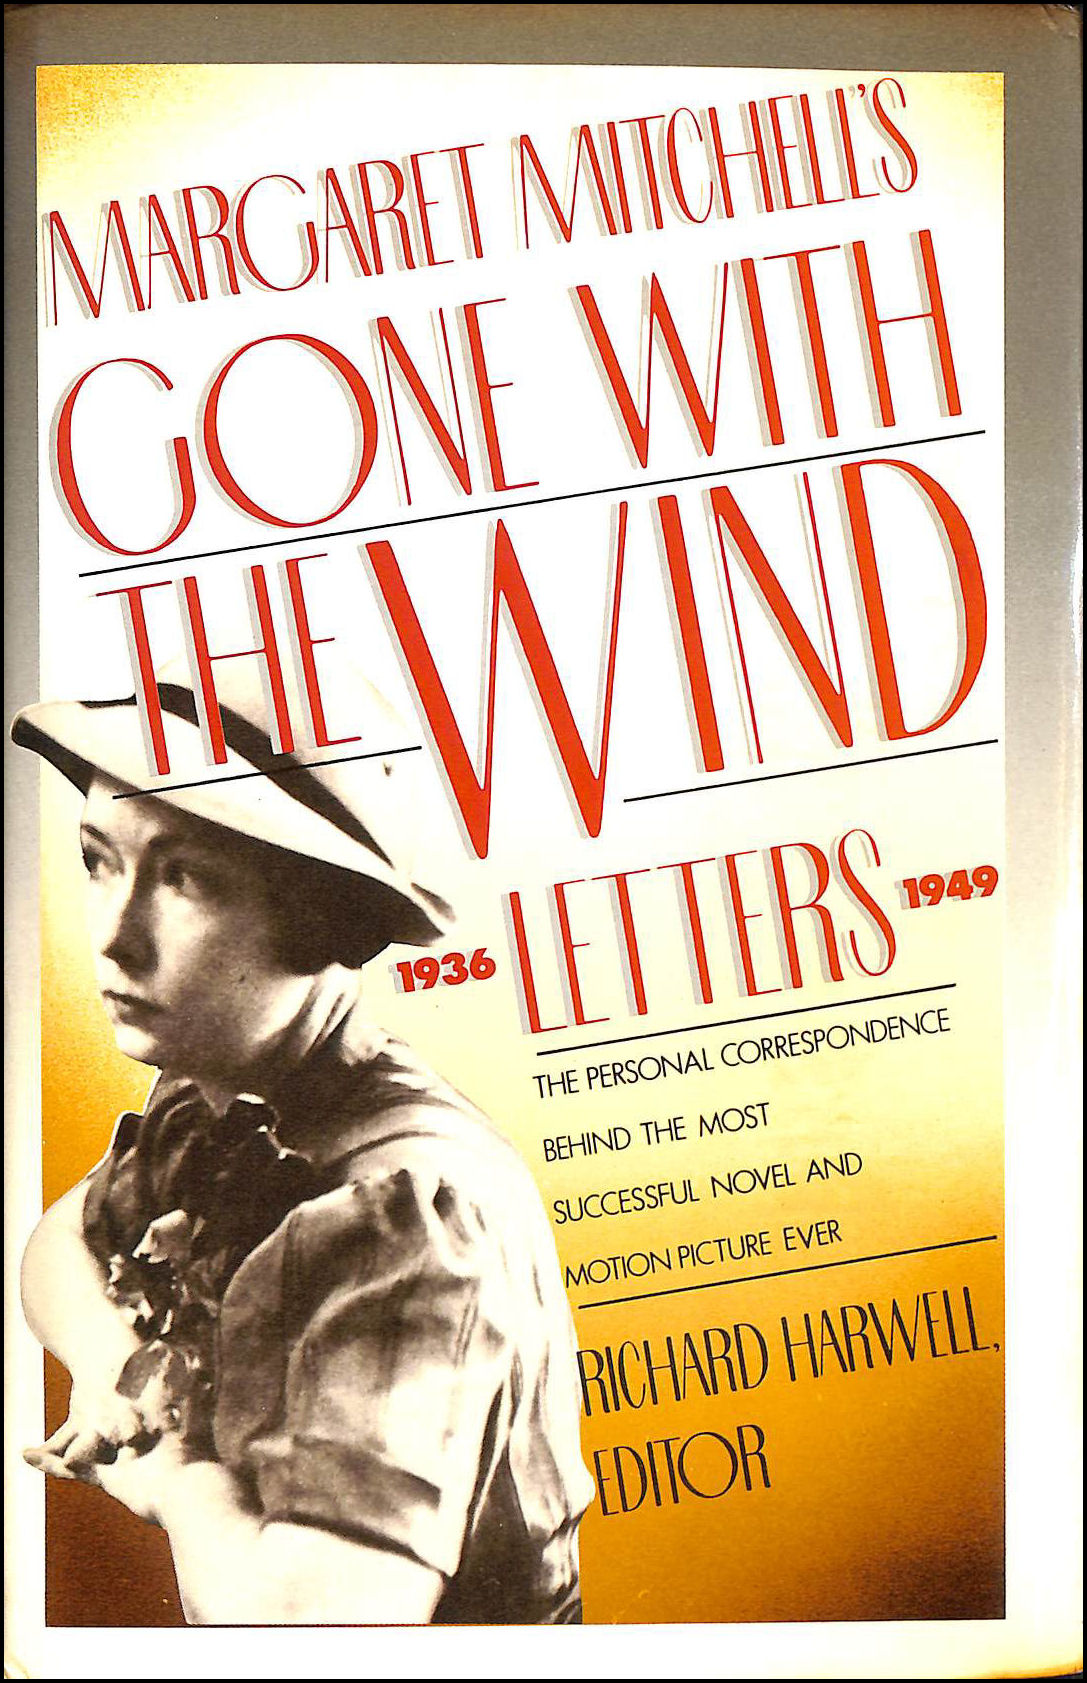 """Margaret Mitchell's """"Gone with the Wind"""" Letters, 1936-1949, Mitchell, Margaret; Harwell, Richard [Editor]"""